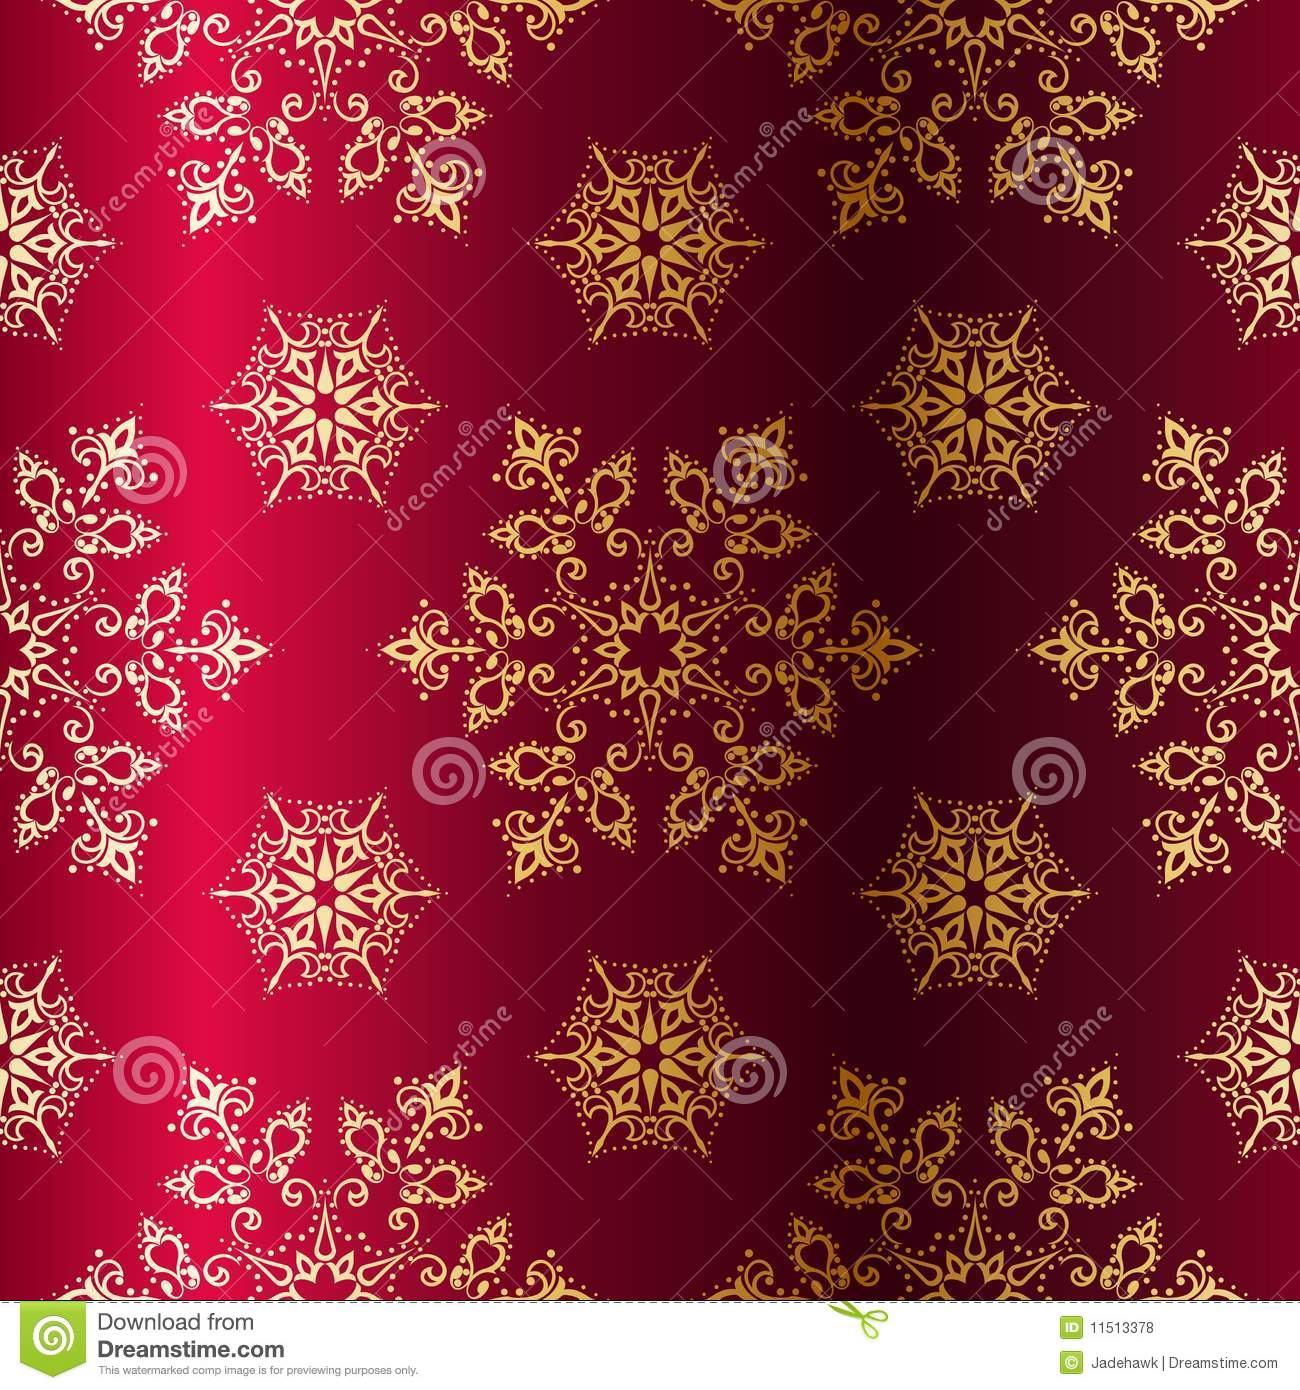 Red-and-Gold Seamless Christmas Background Royalty Free Stock ...